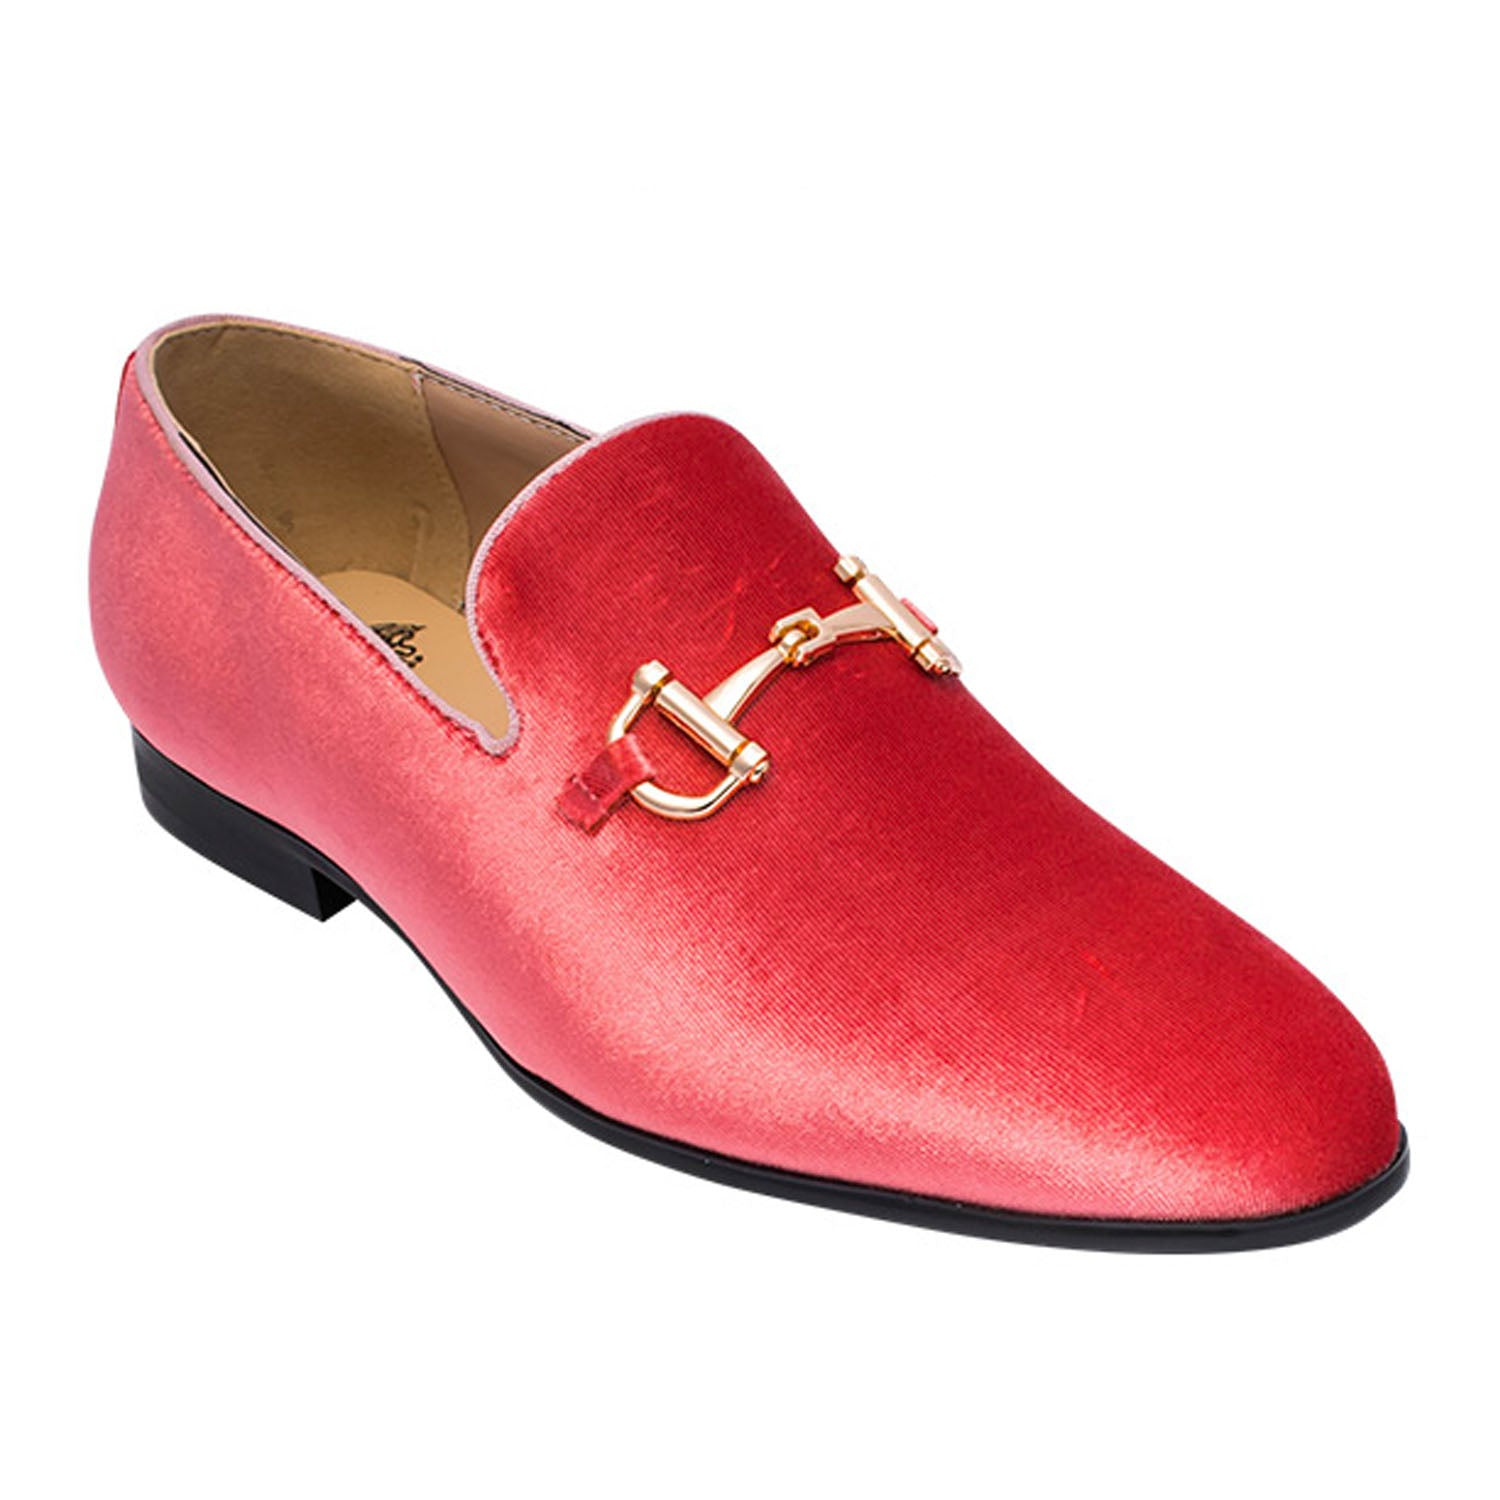 Coral Loafer Shoe LF-9100